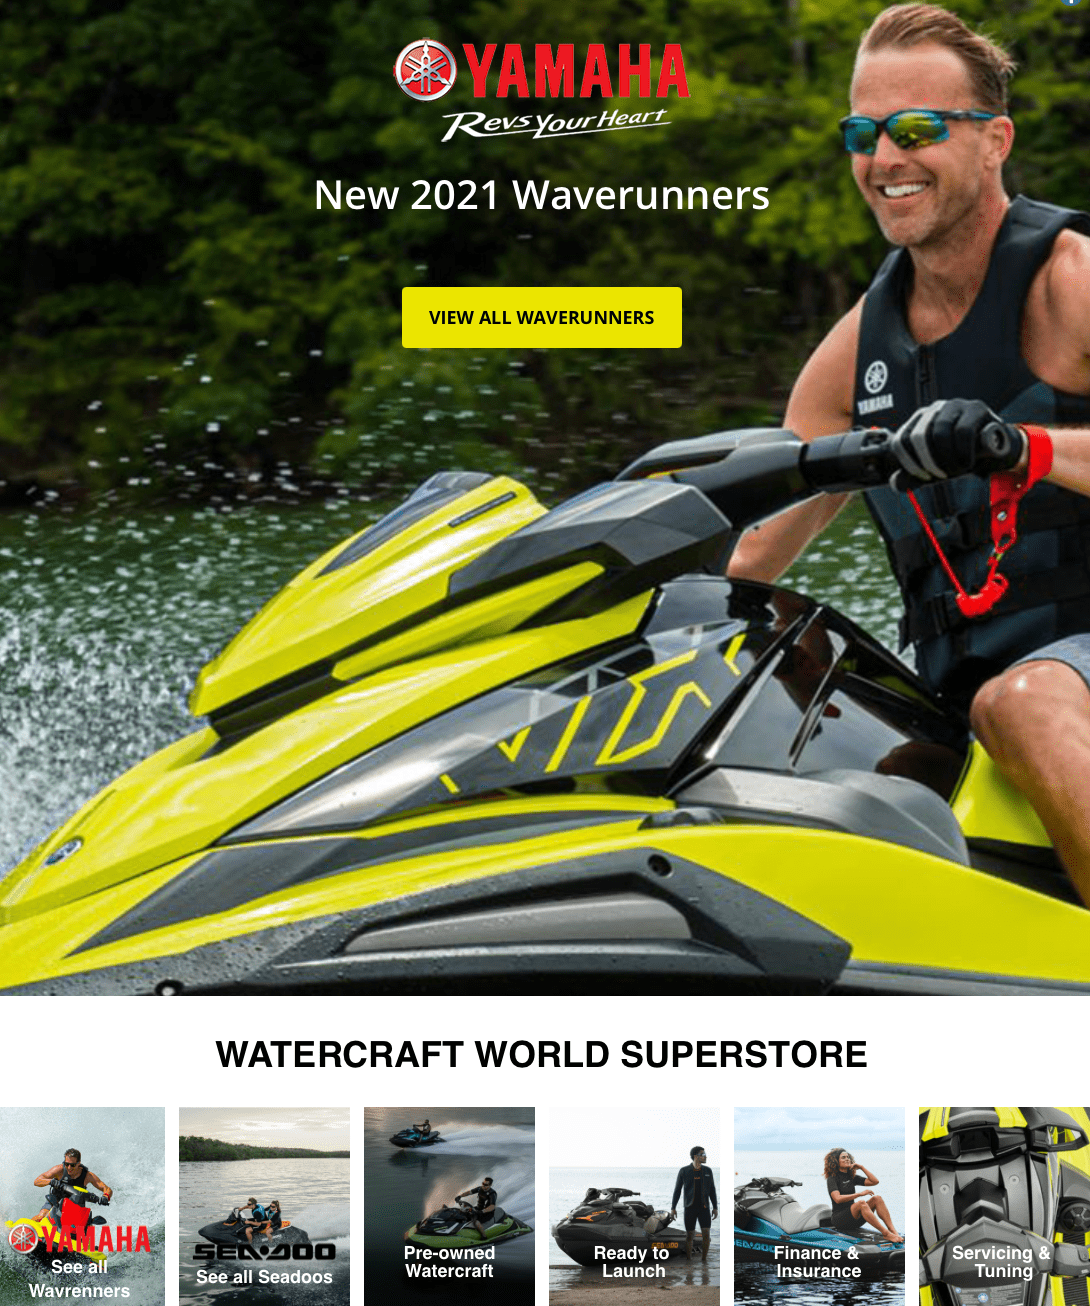 Watercraft World